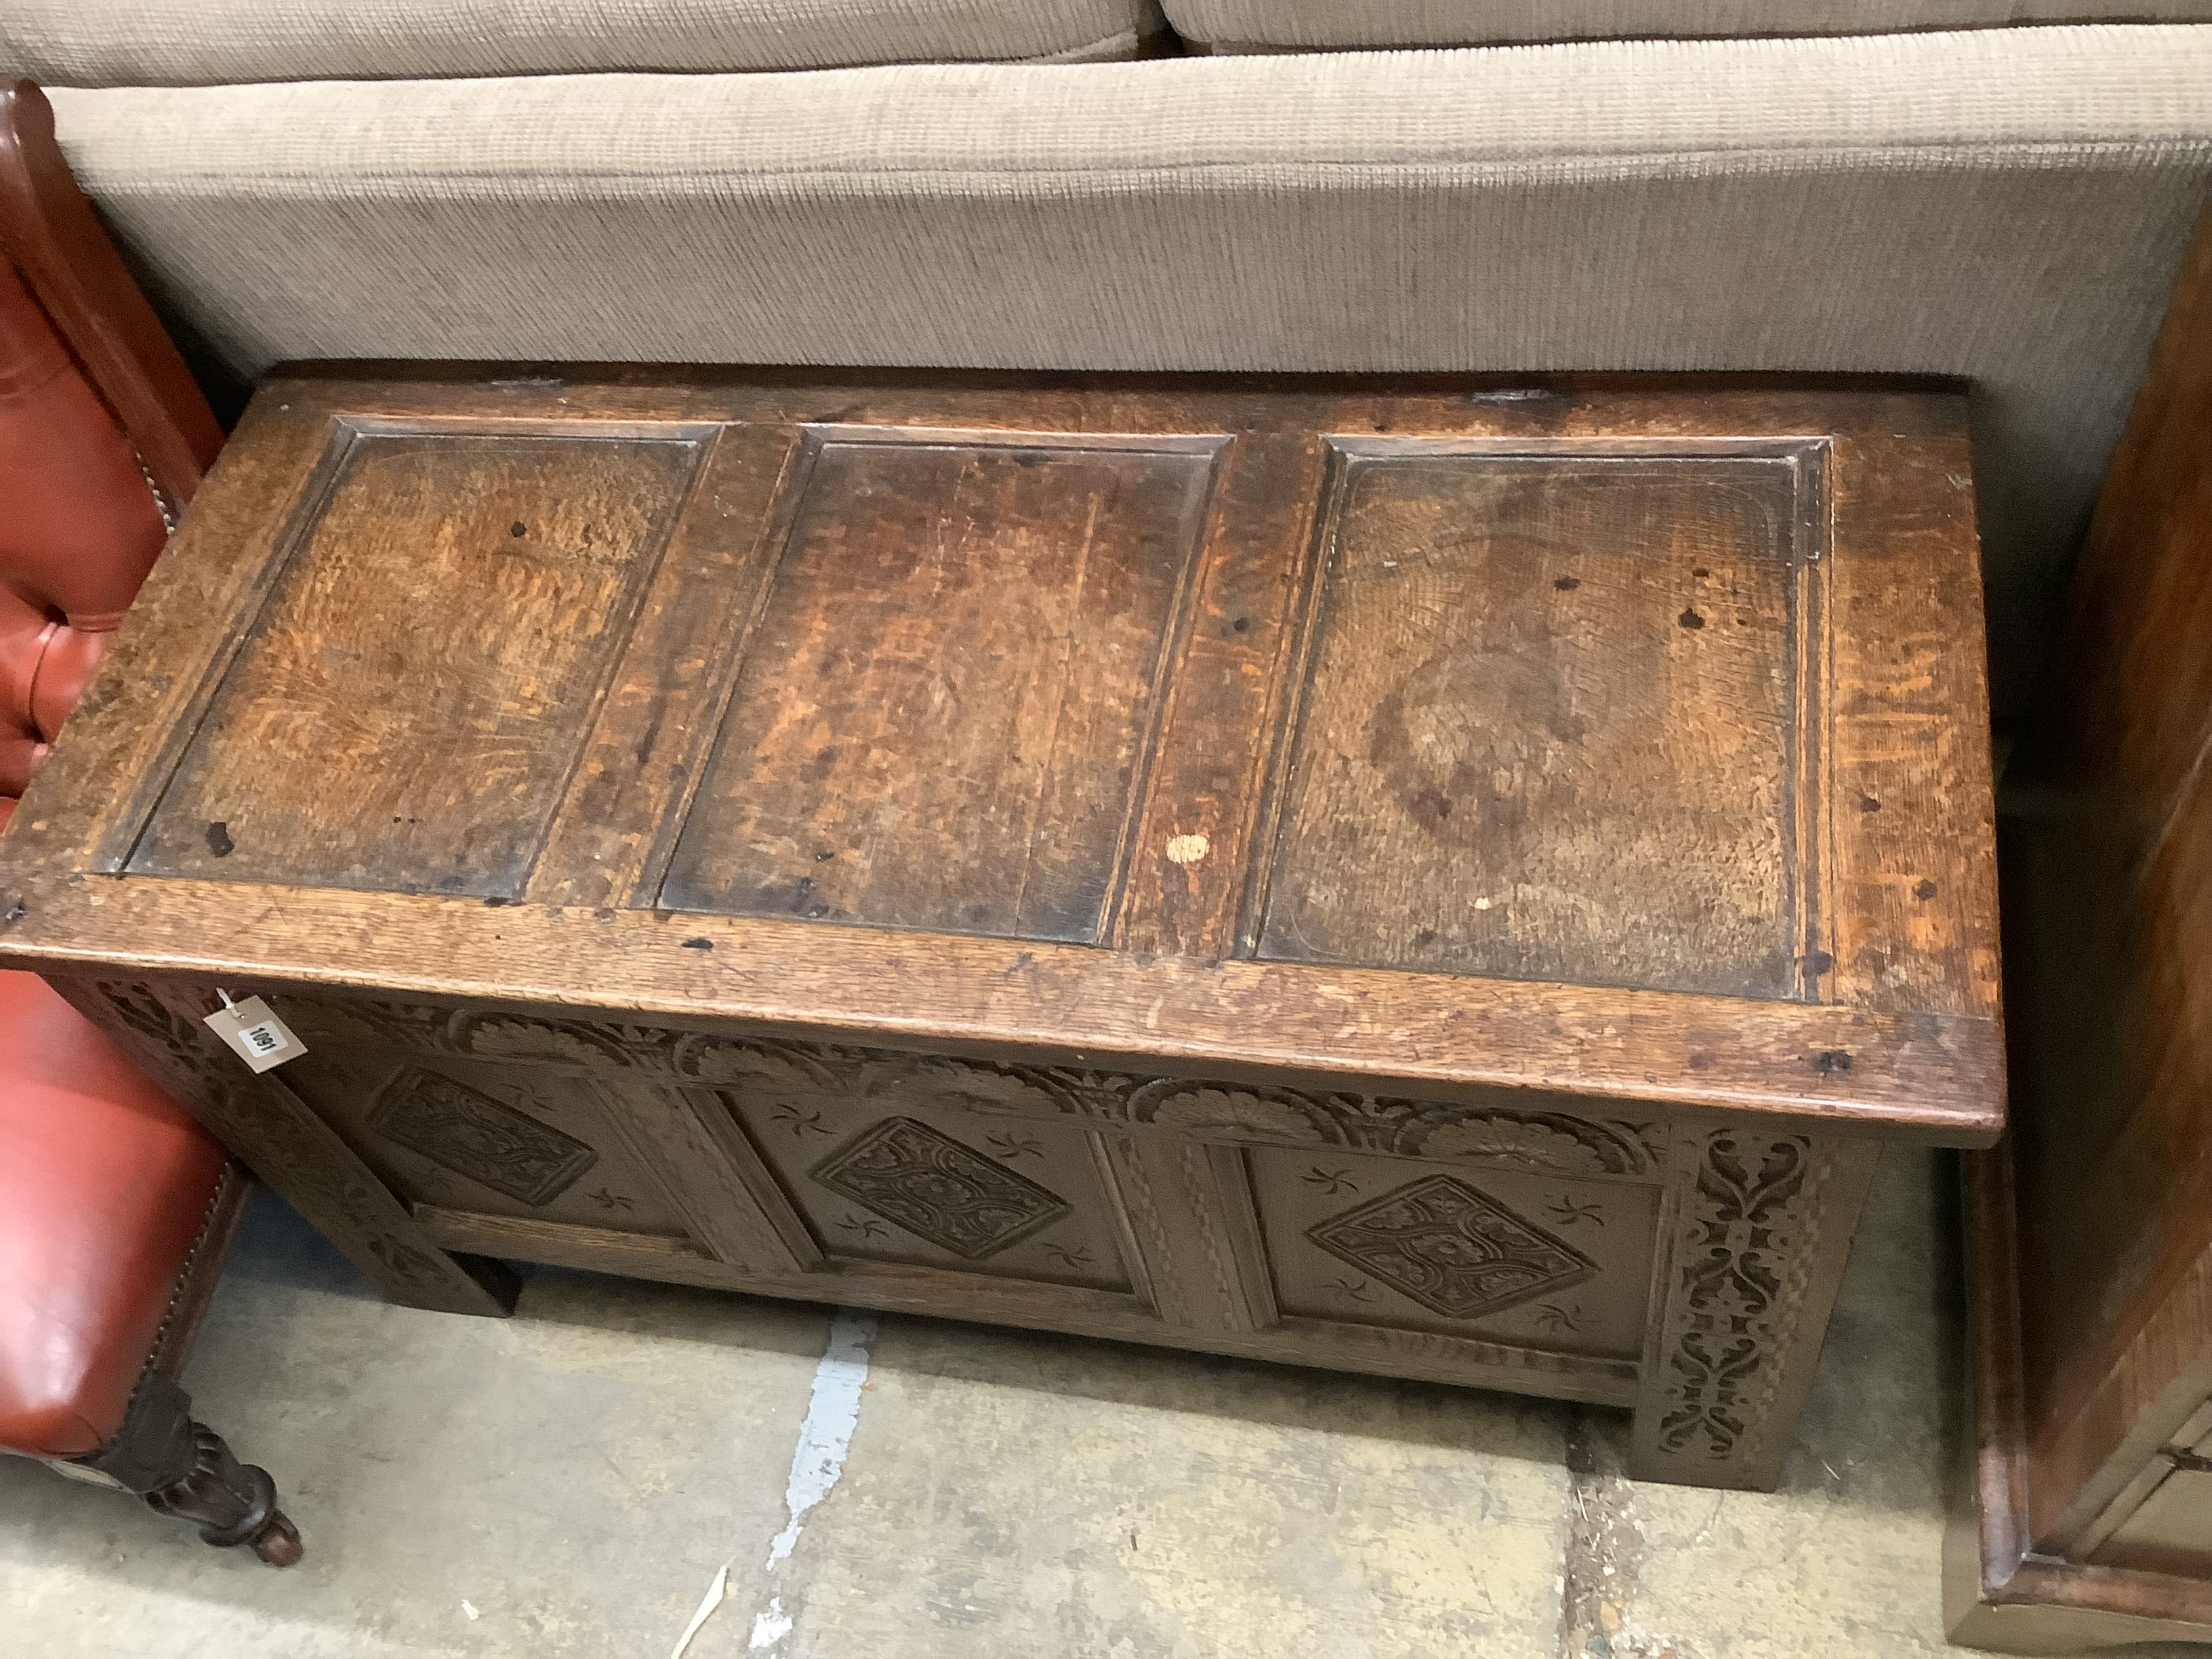 A 17th / 18th century panelled carved oak coffer, length 122cm, depth 53cm, height 61cm - Image 2 of 3